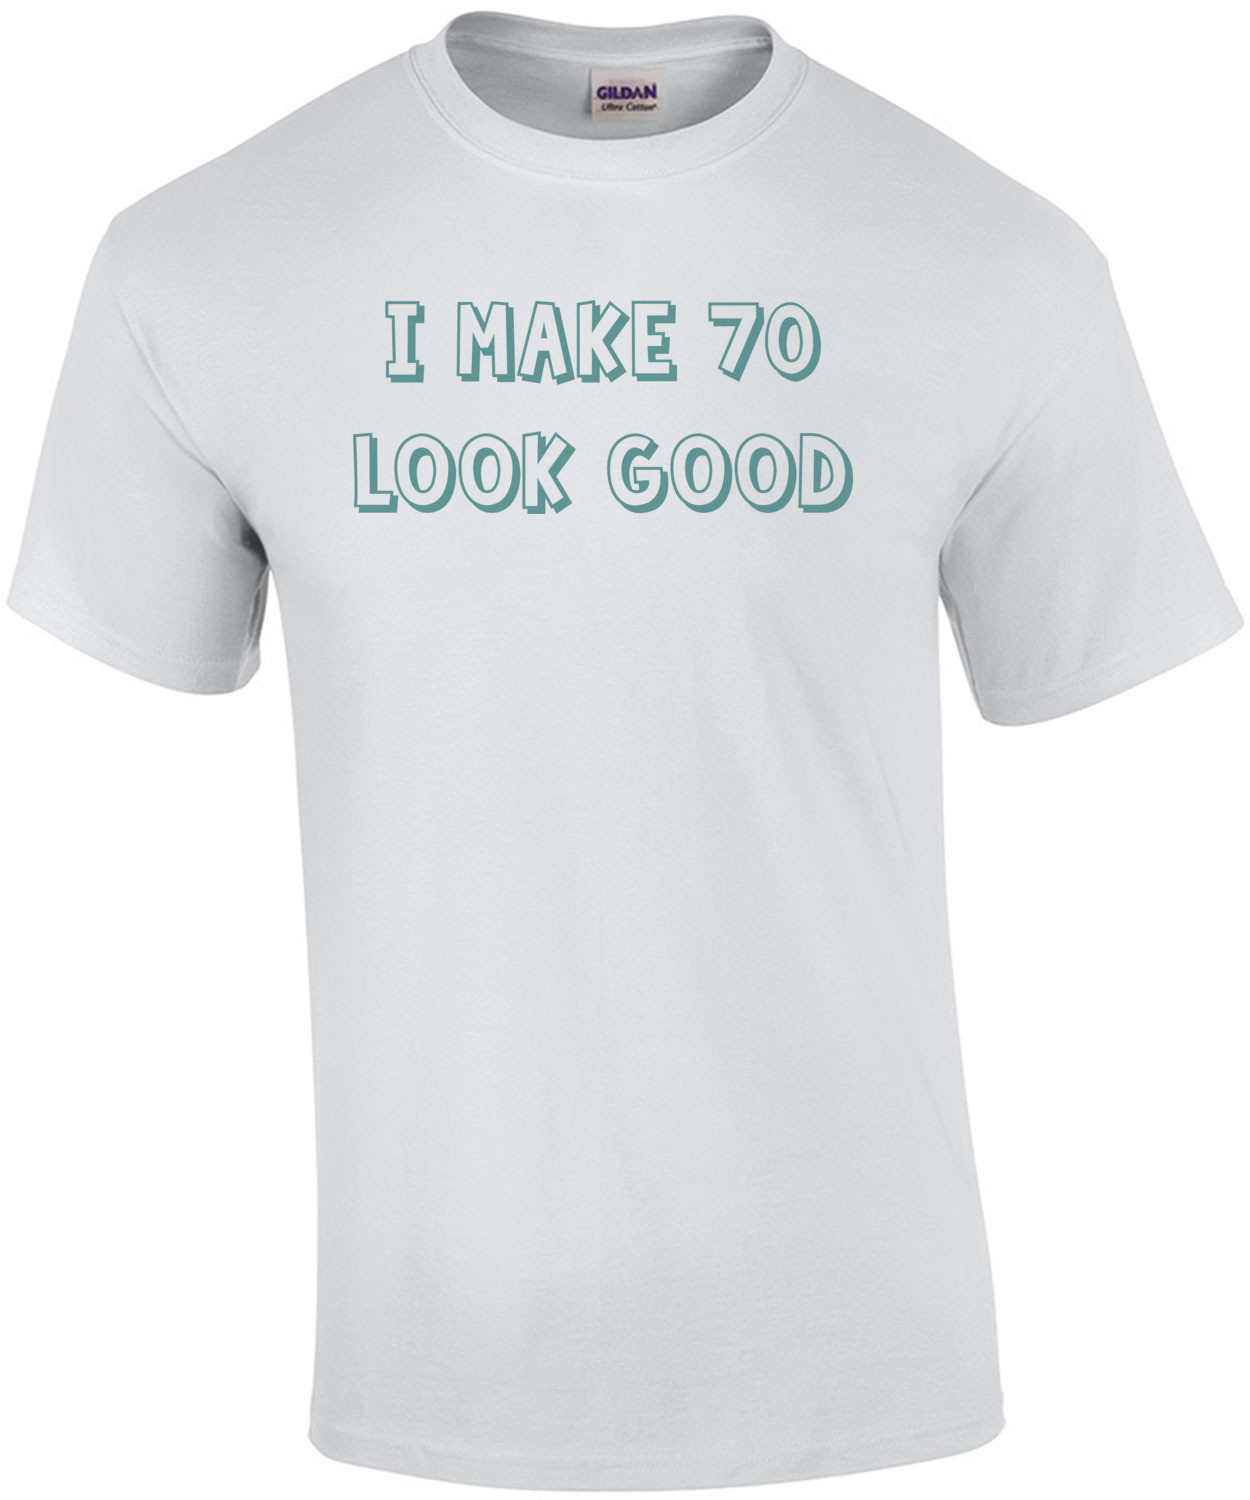 I make 70 look good - seventy 70 birthday t-shirt